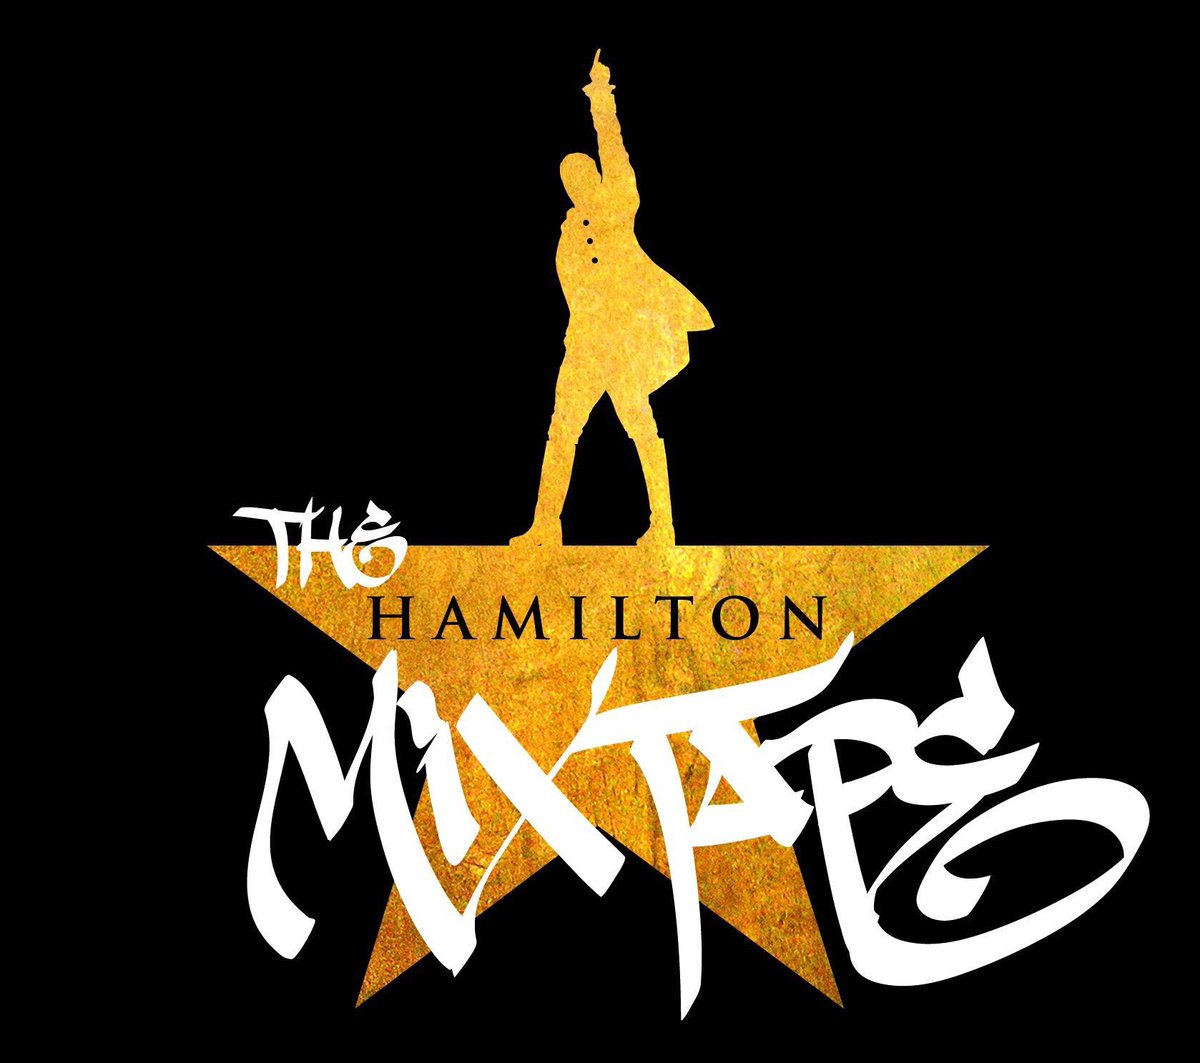 Satisfied with @Sia and @Miguel #HamiltonMixtape https://t.co/ZBHavMAPhR